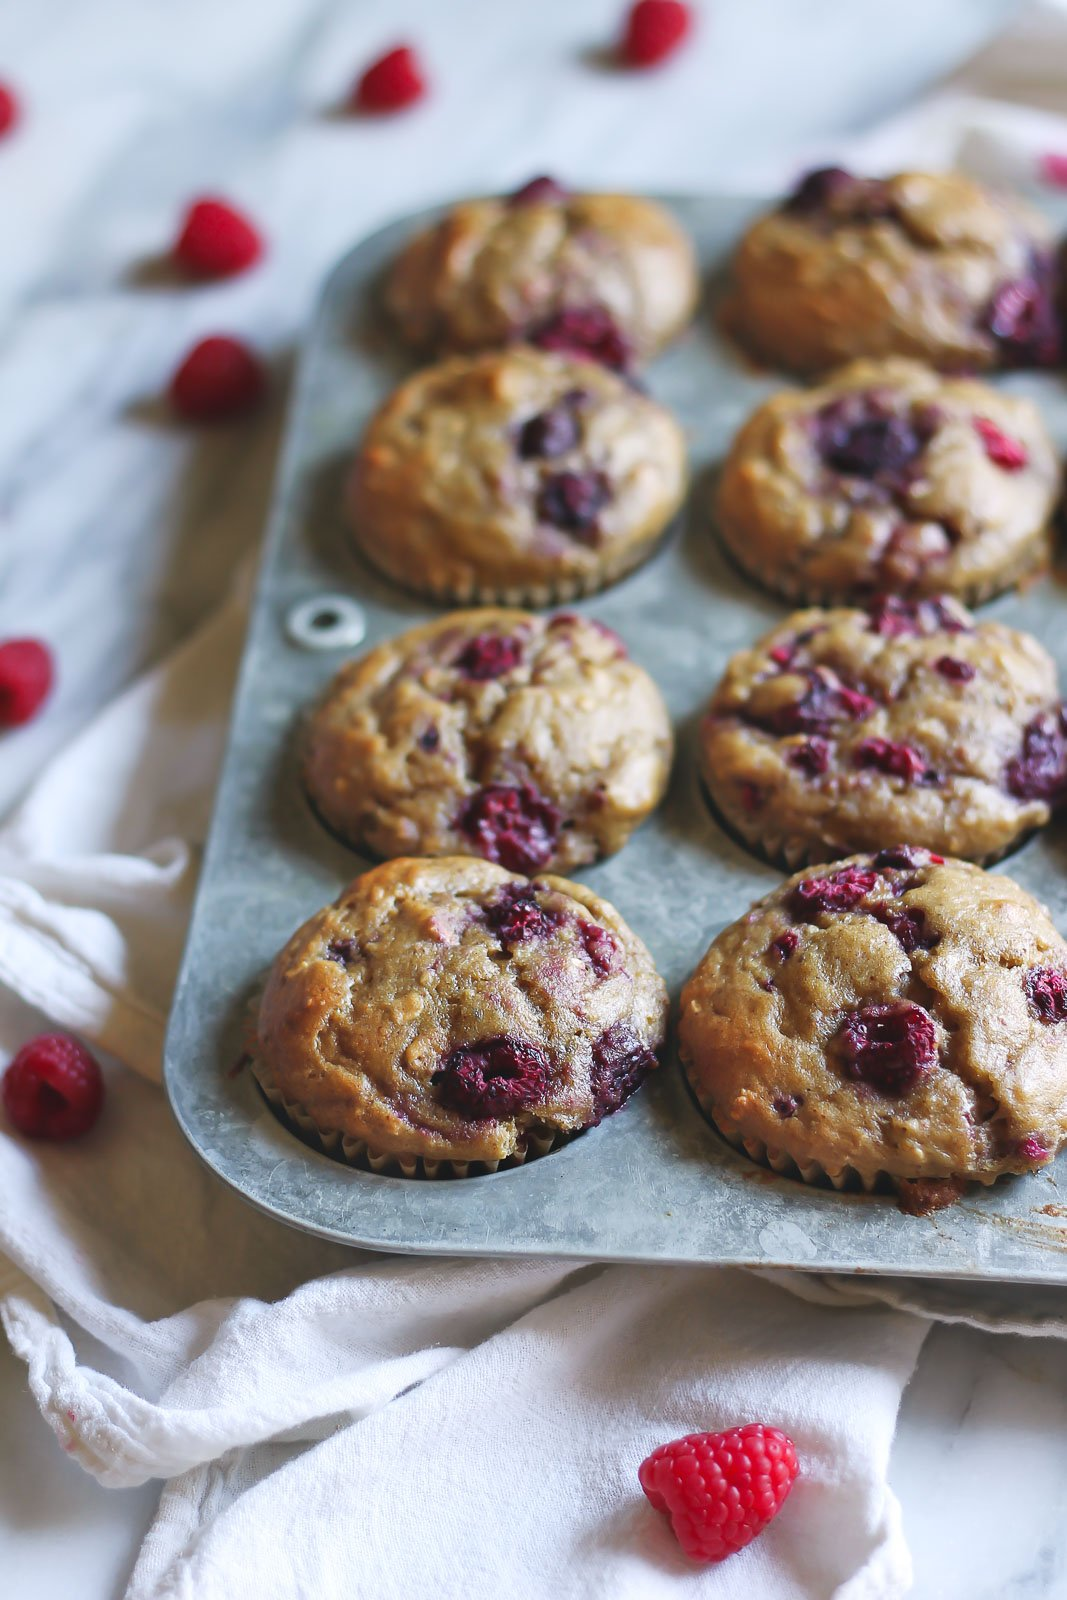 banana oatmeal muffins with raspberries in a muffin tin